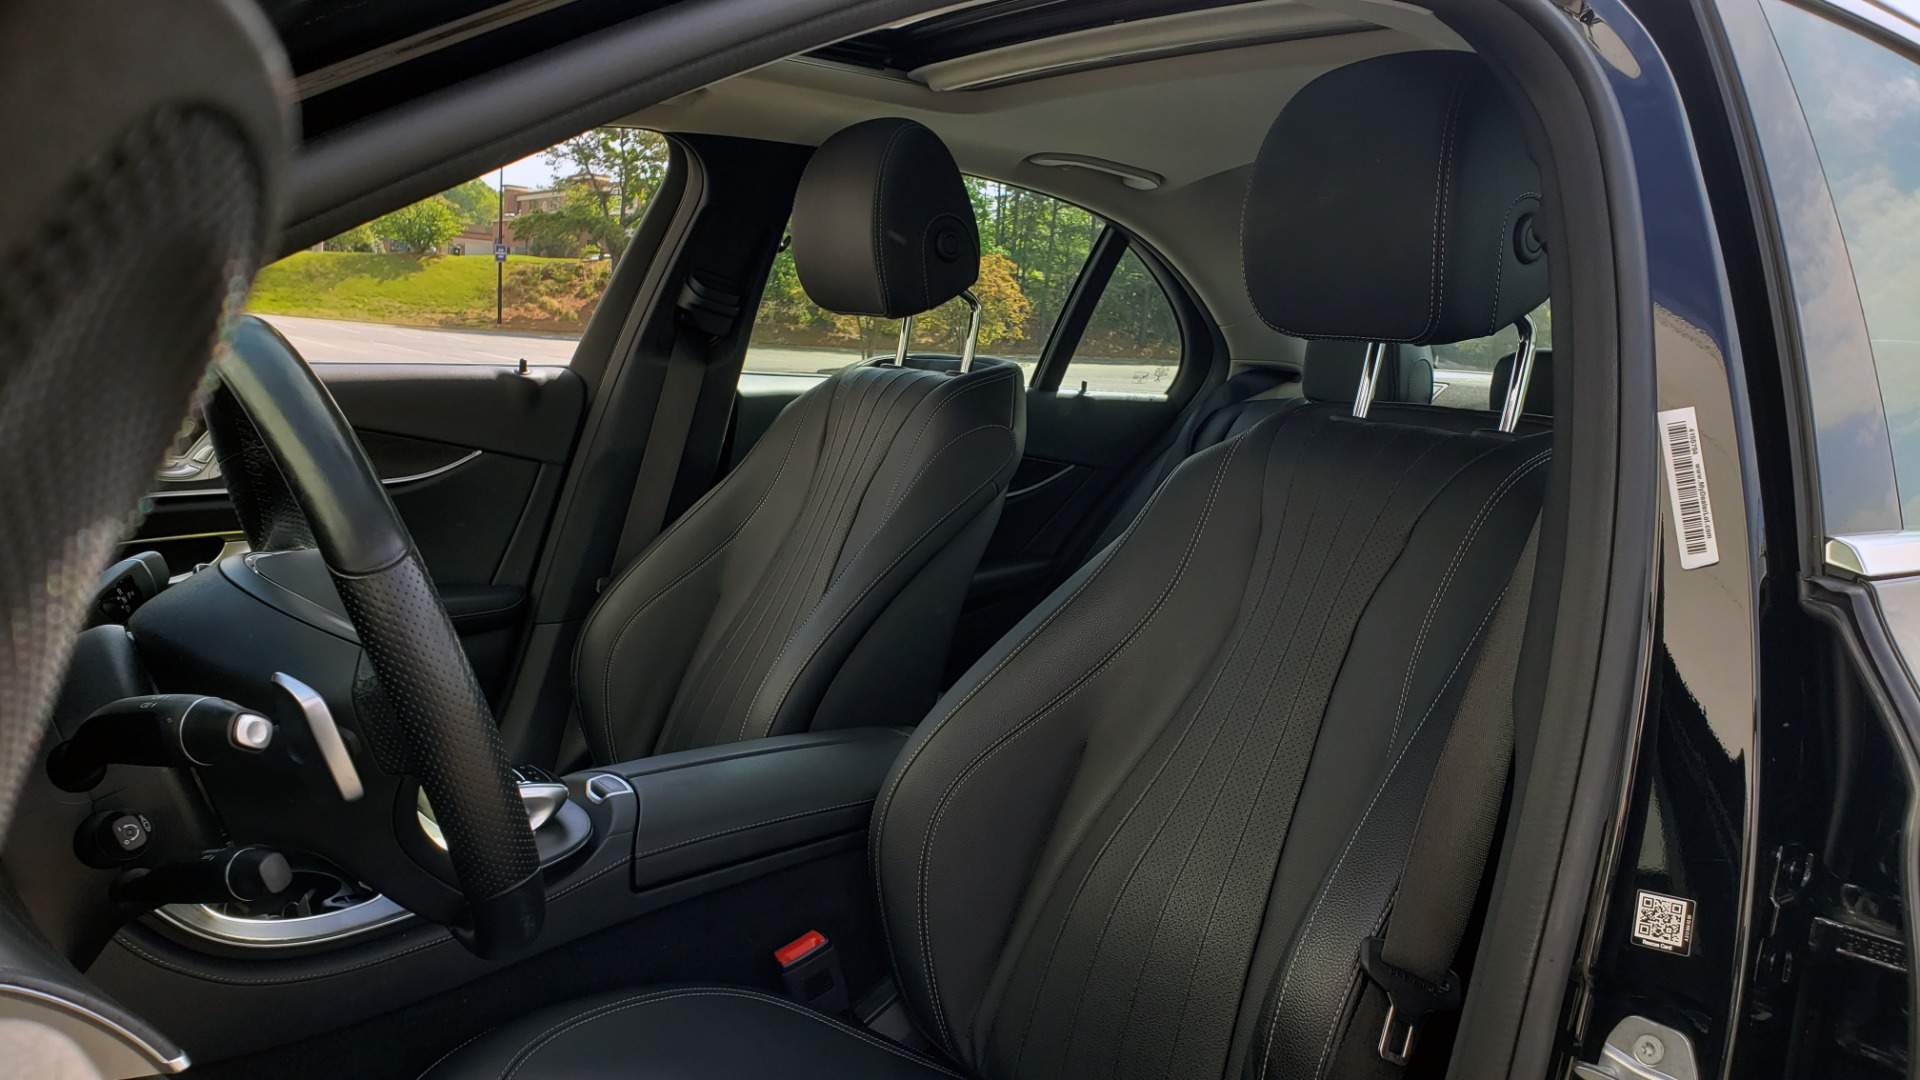 Used 2018 Mercedes-Benz E-CLASS E 300 PREMIUM / 4MATIC / NAV / SUNROOF / H/K SND / REARVIEW for sale $34,195 at Formula Imports in Charlotte NC 28227 32